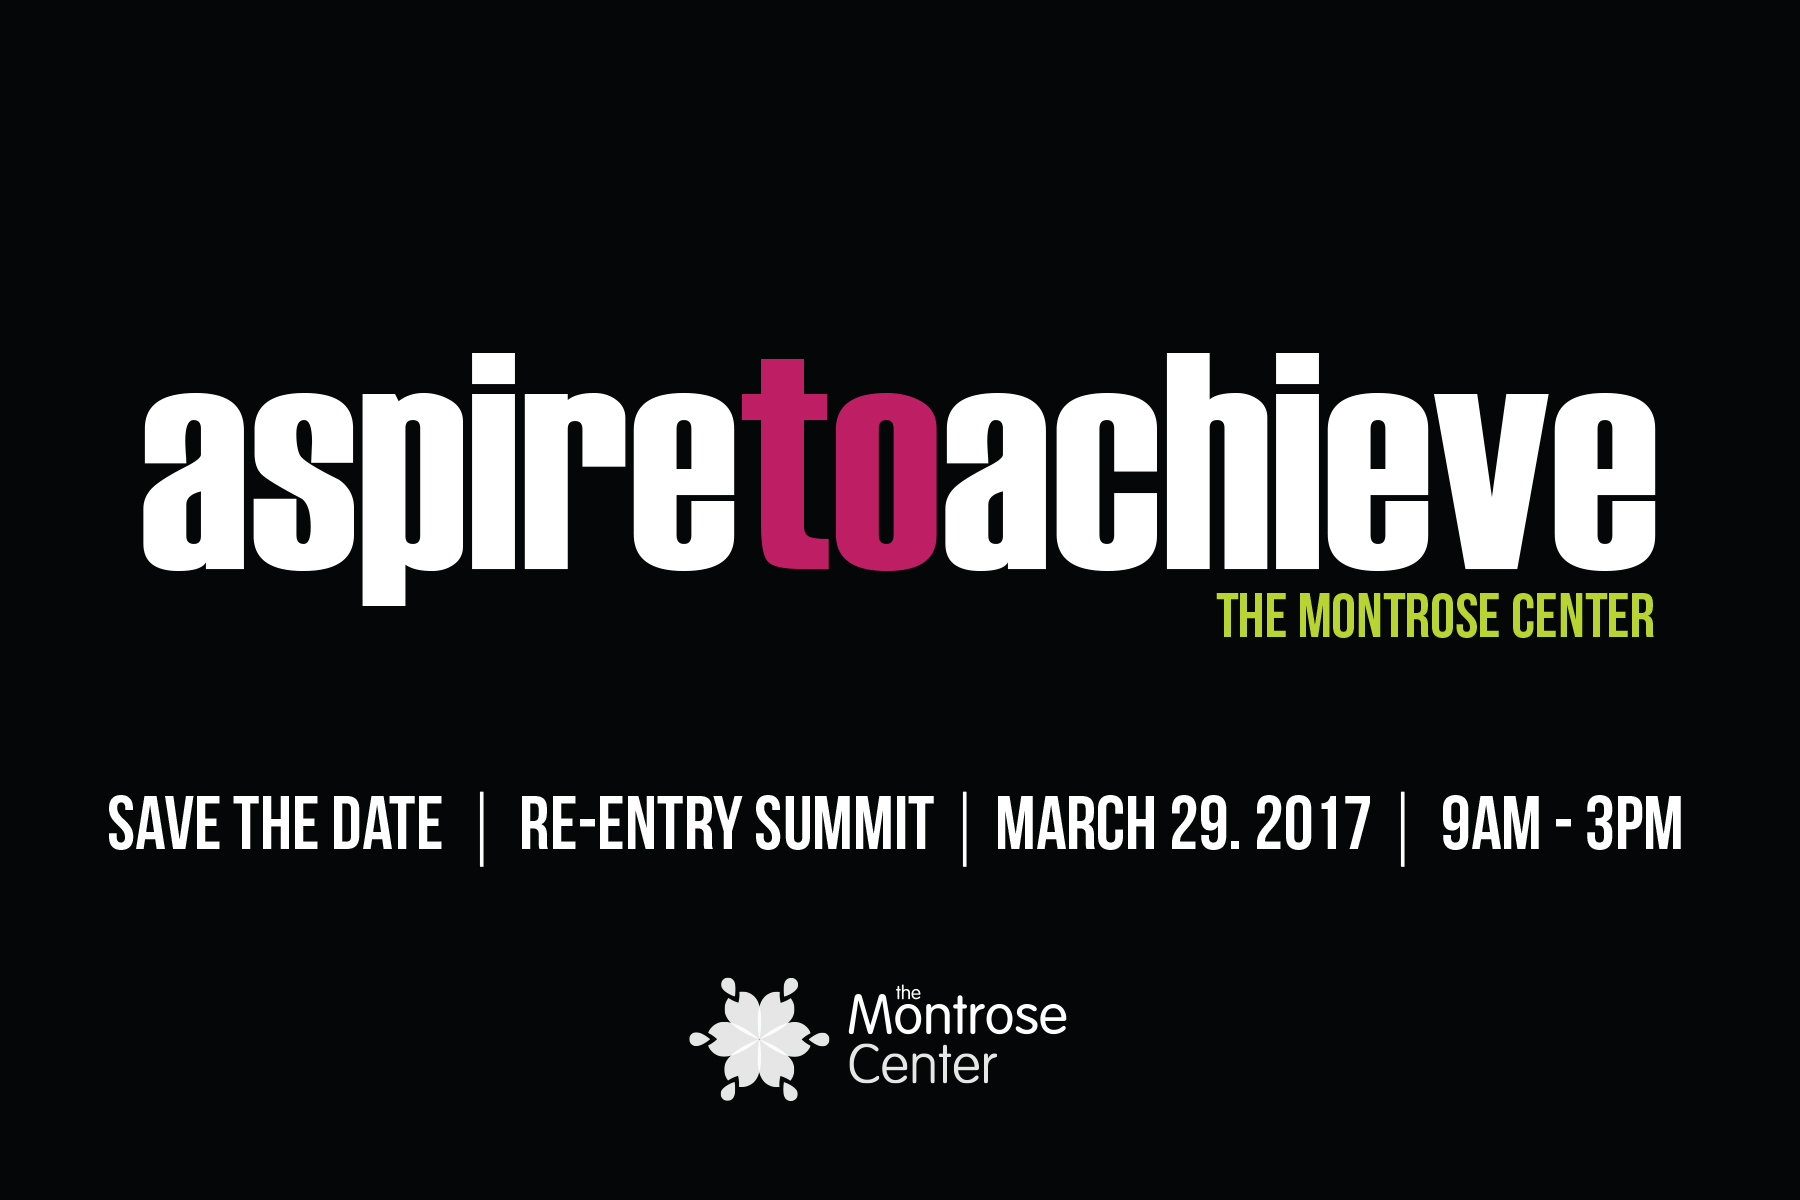 aspire-to-achieve-re-entry-SAVE-THE-DATE